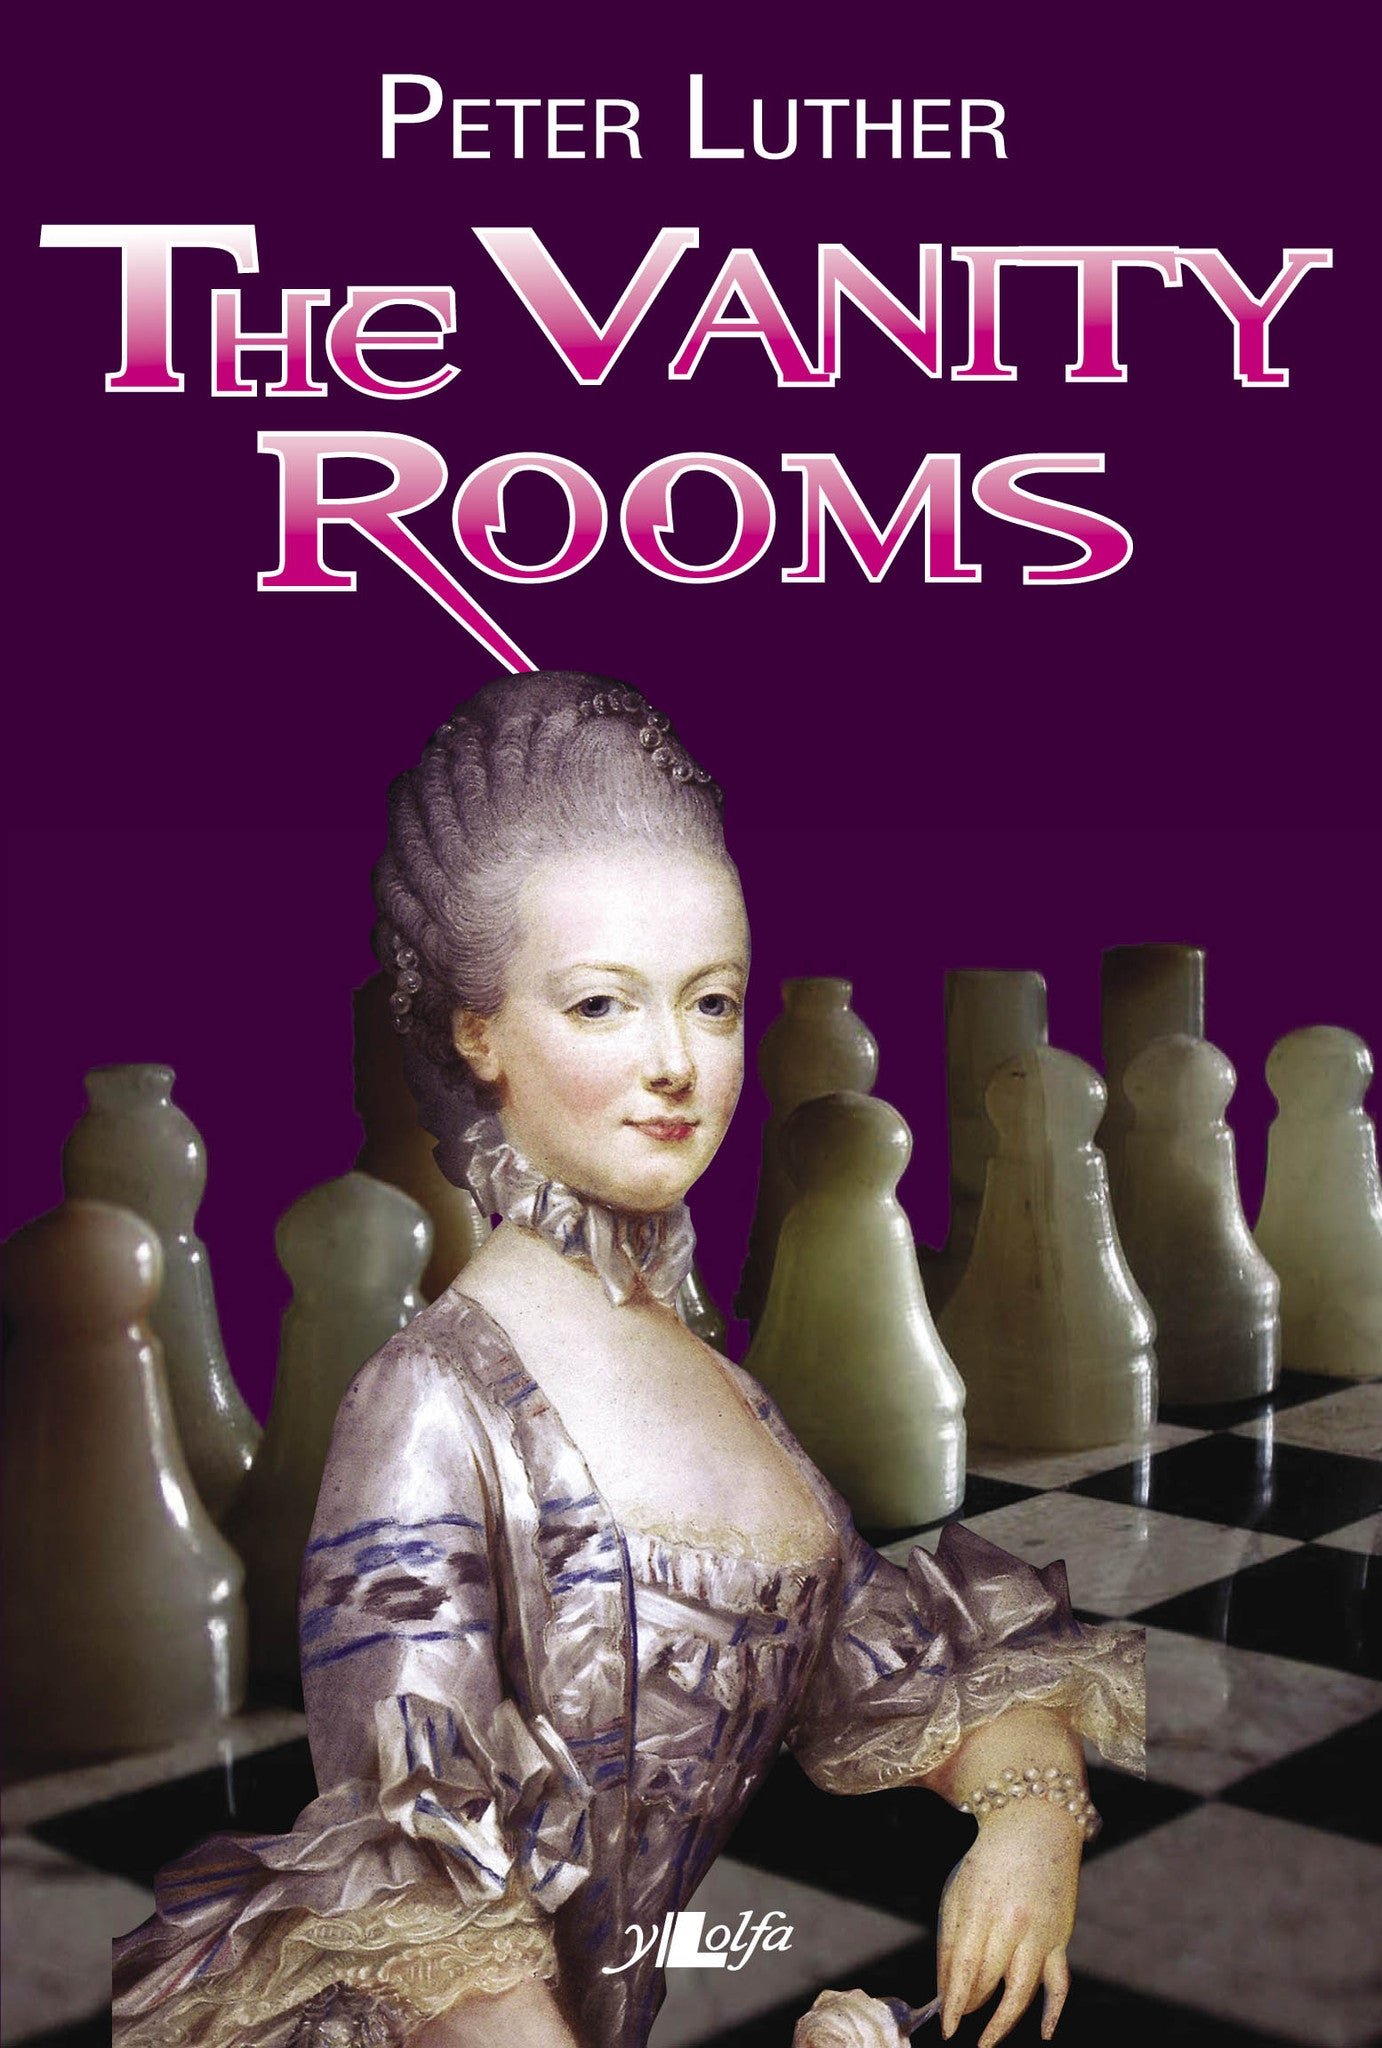 The Vanity Rooms